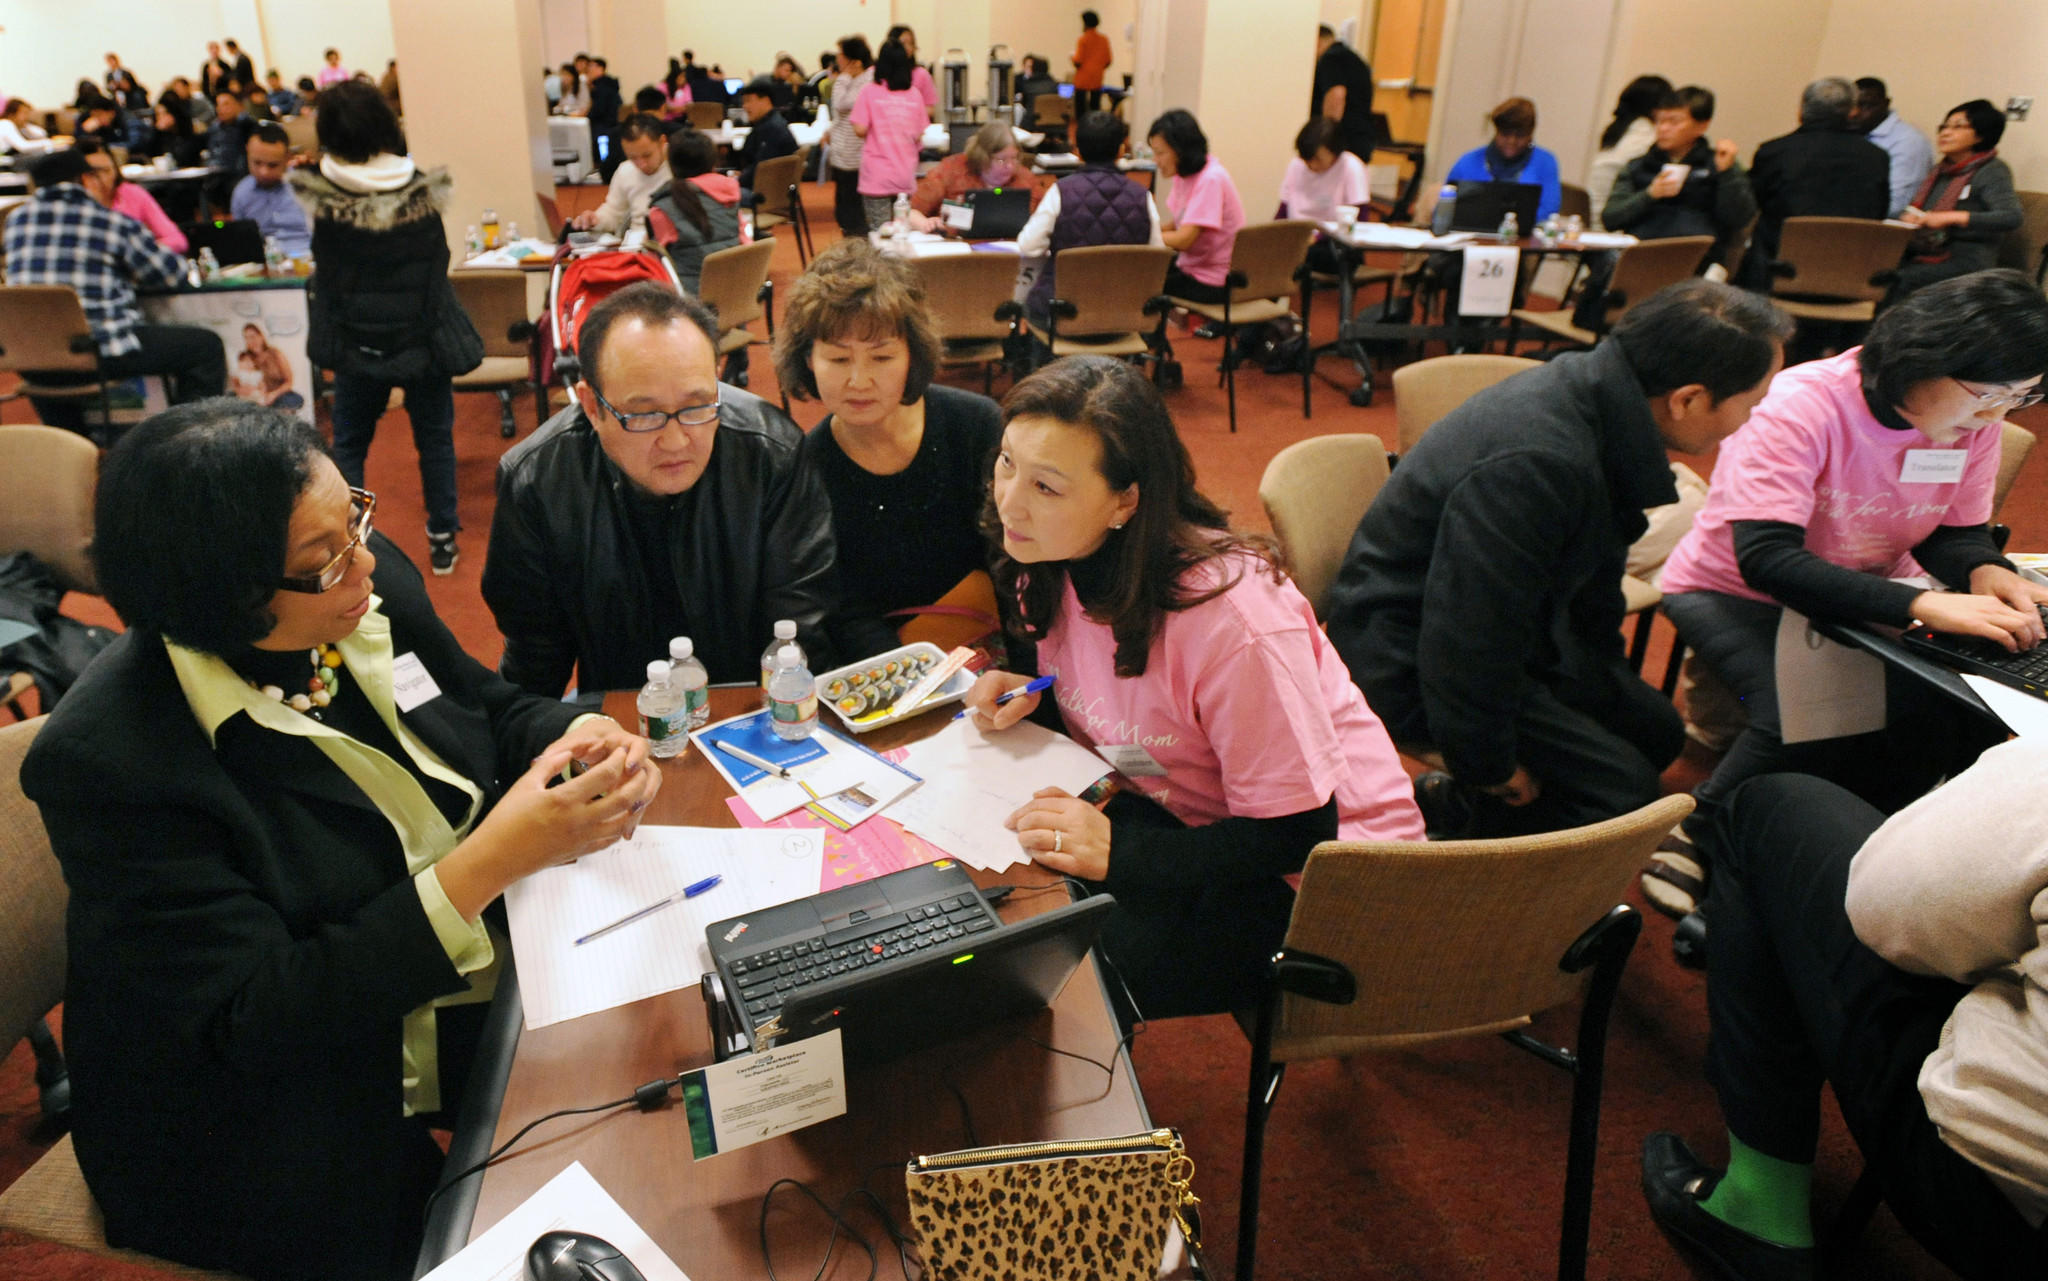 Counselors help Korean Americans sign up for health insurance during an event at Holy Name Medical Center in Teaneck, N.J., this month.